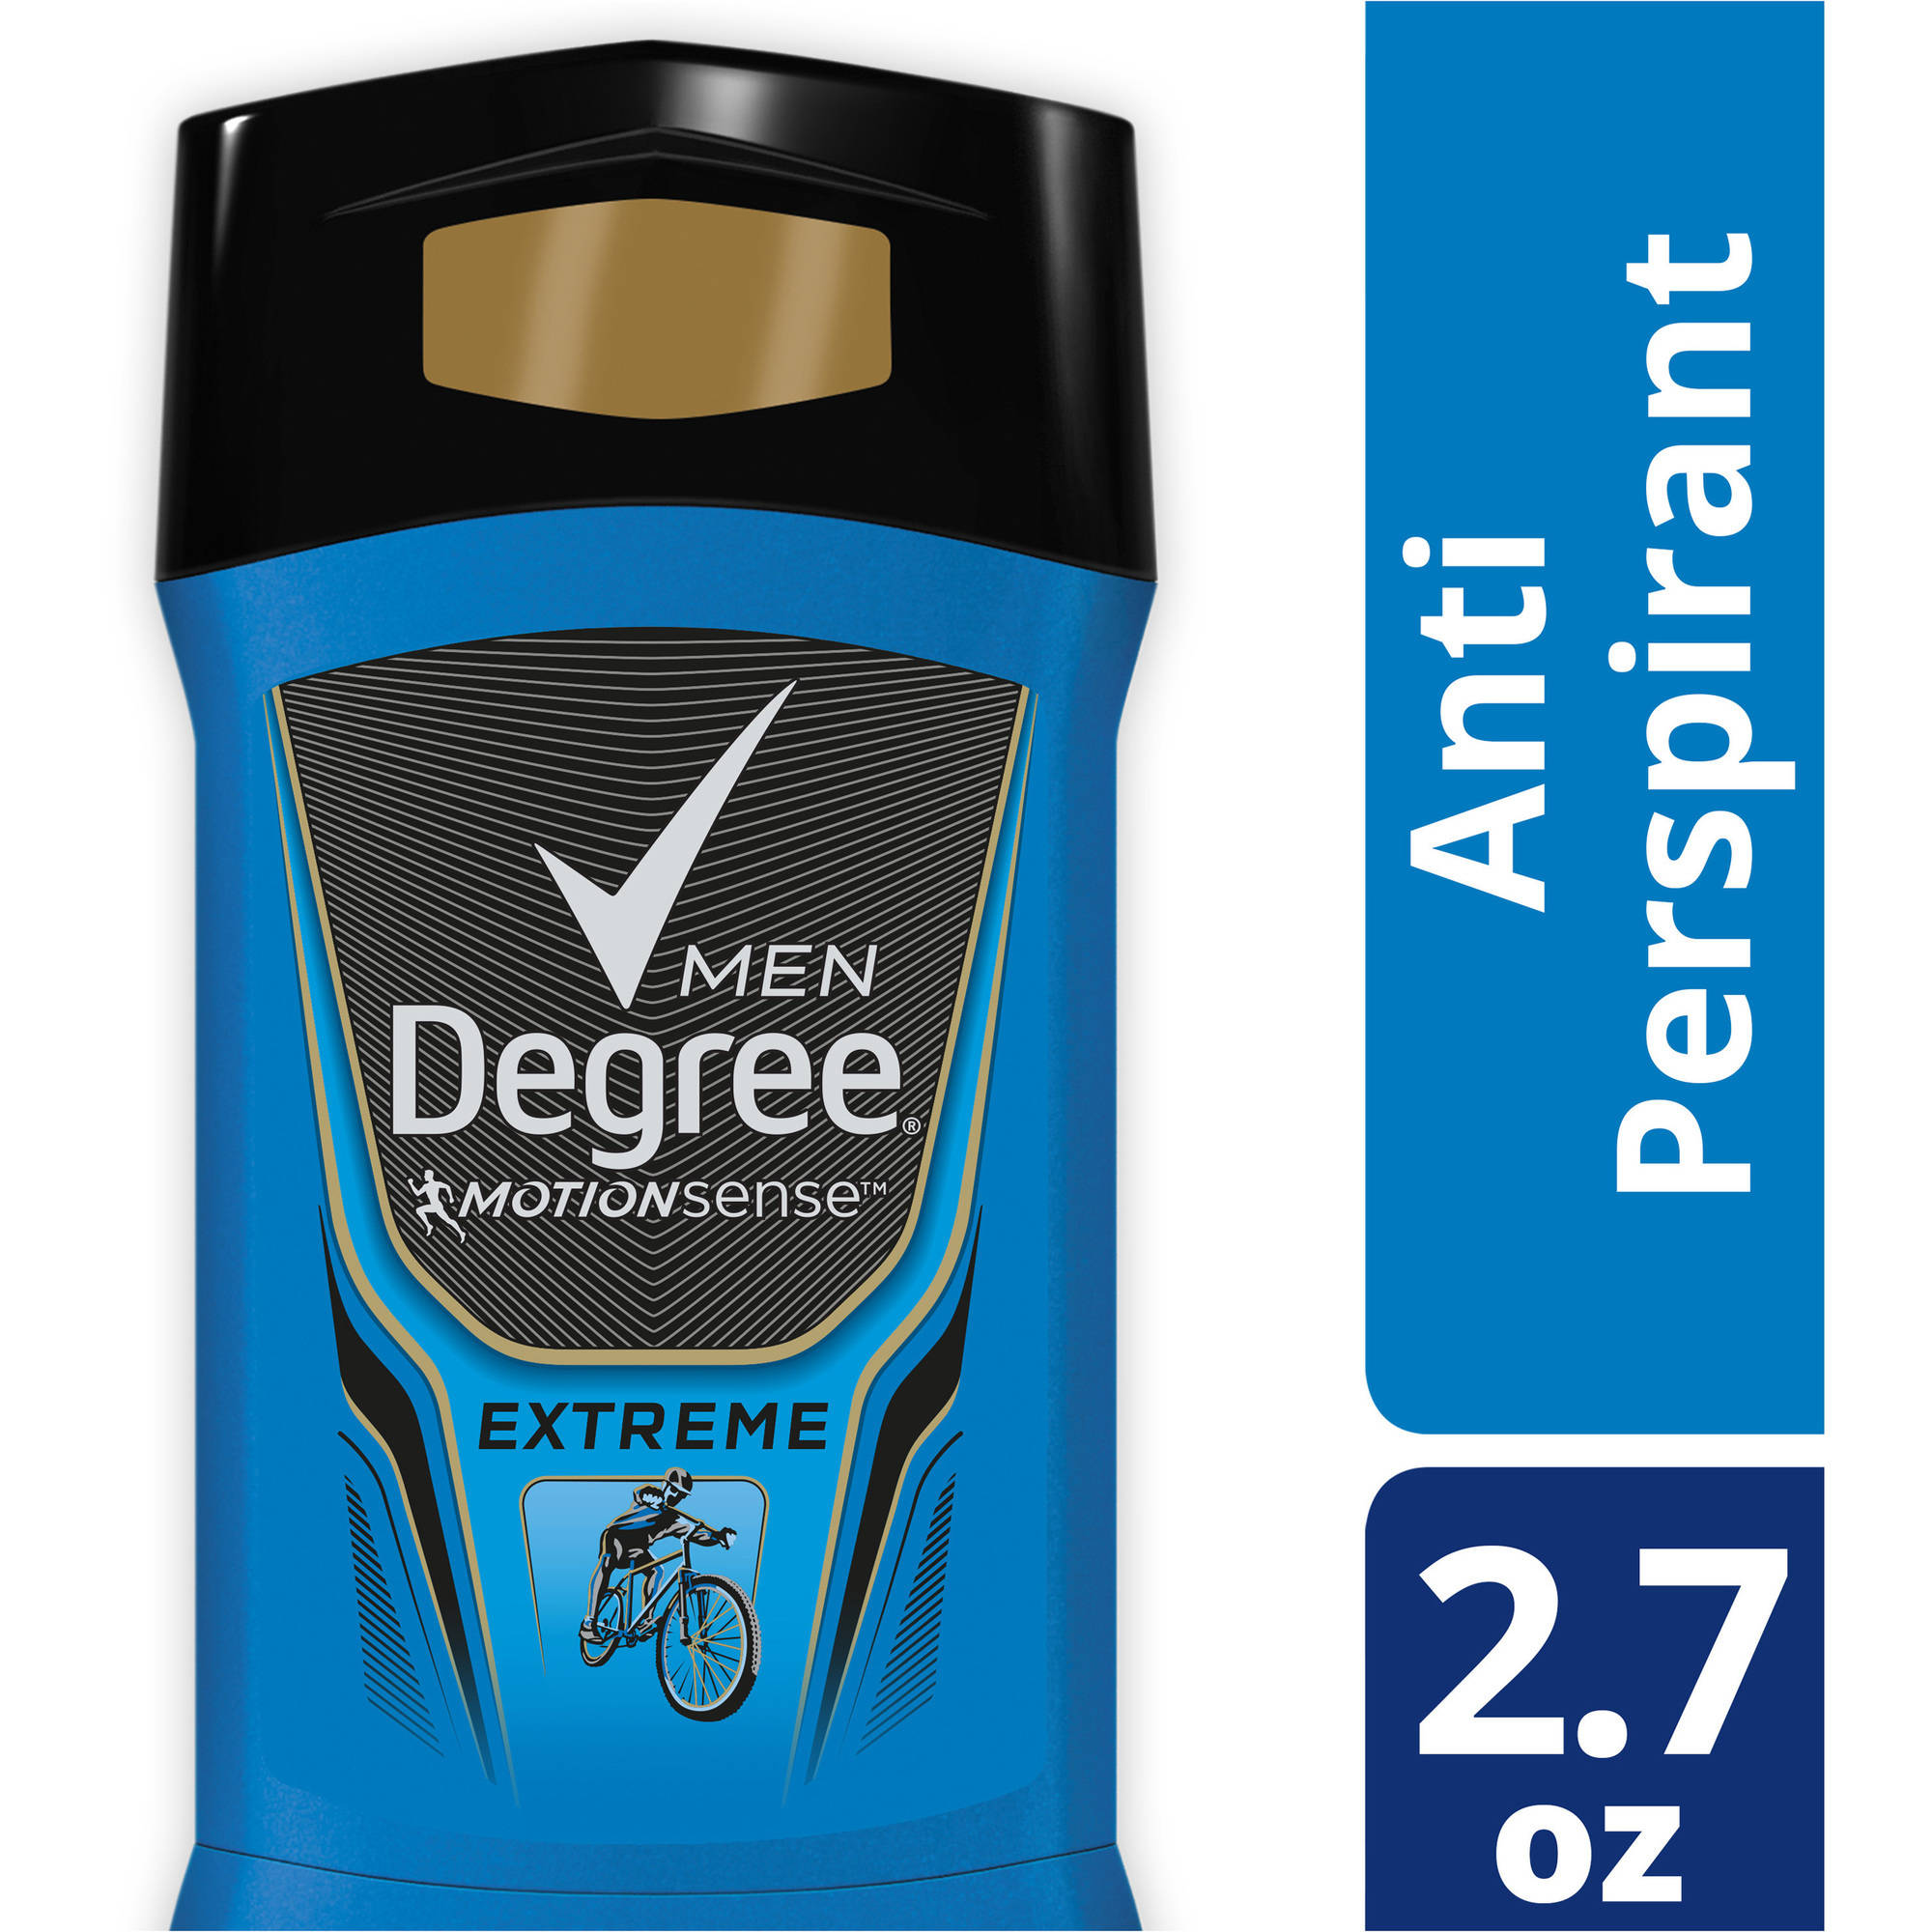 Degree Men MotionSense Extreme Antiperspirant Deodorant, 2.7 oz